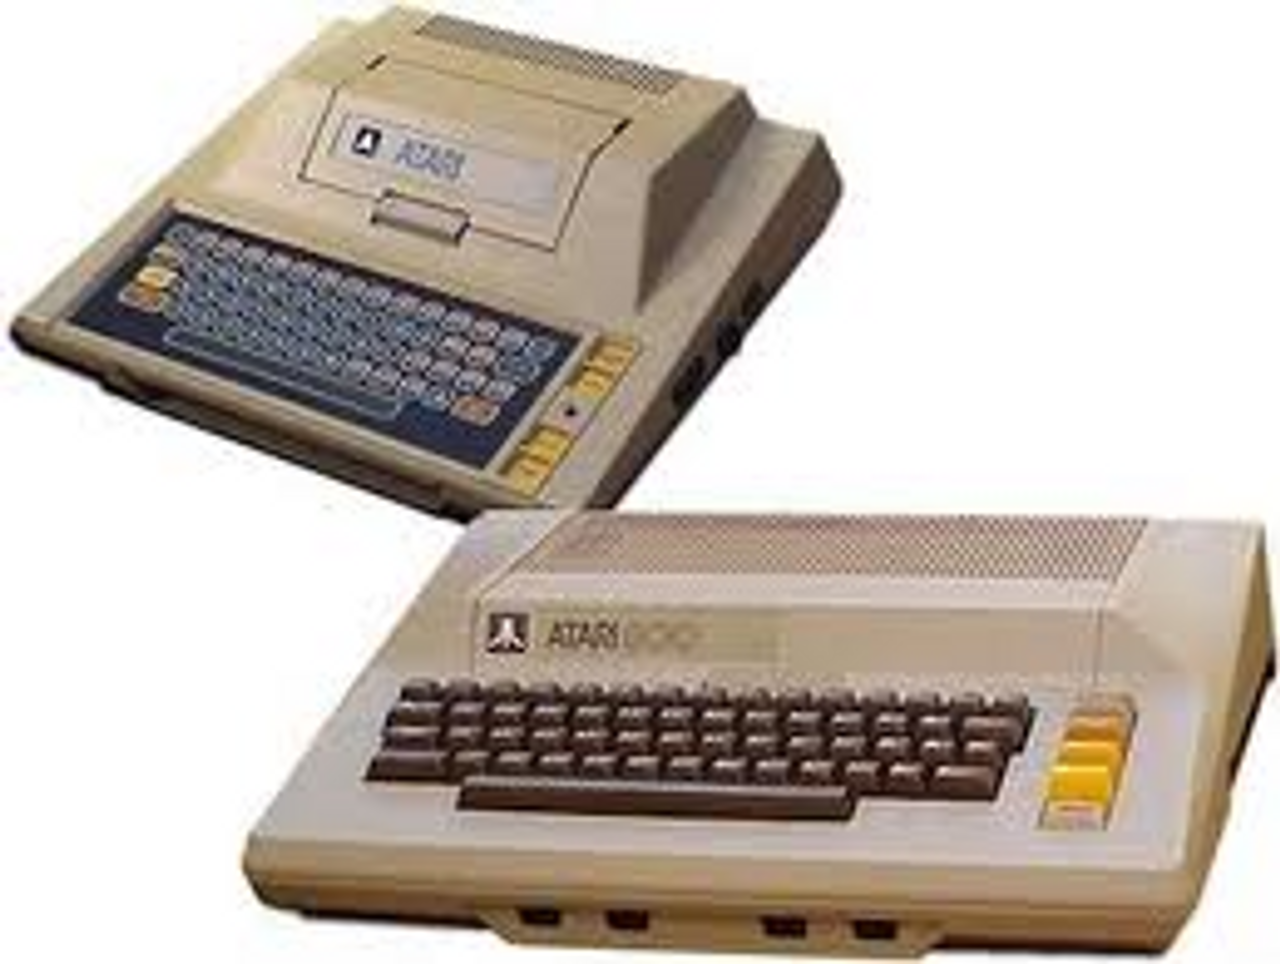 Atari 8-Bit Games And Software